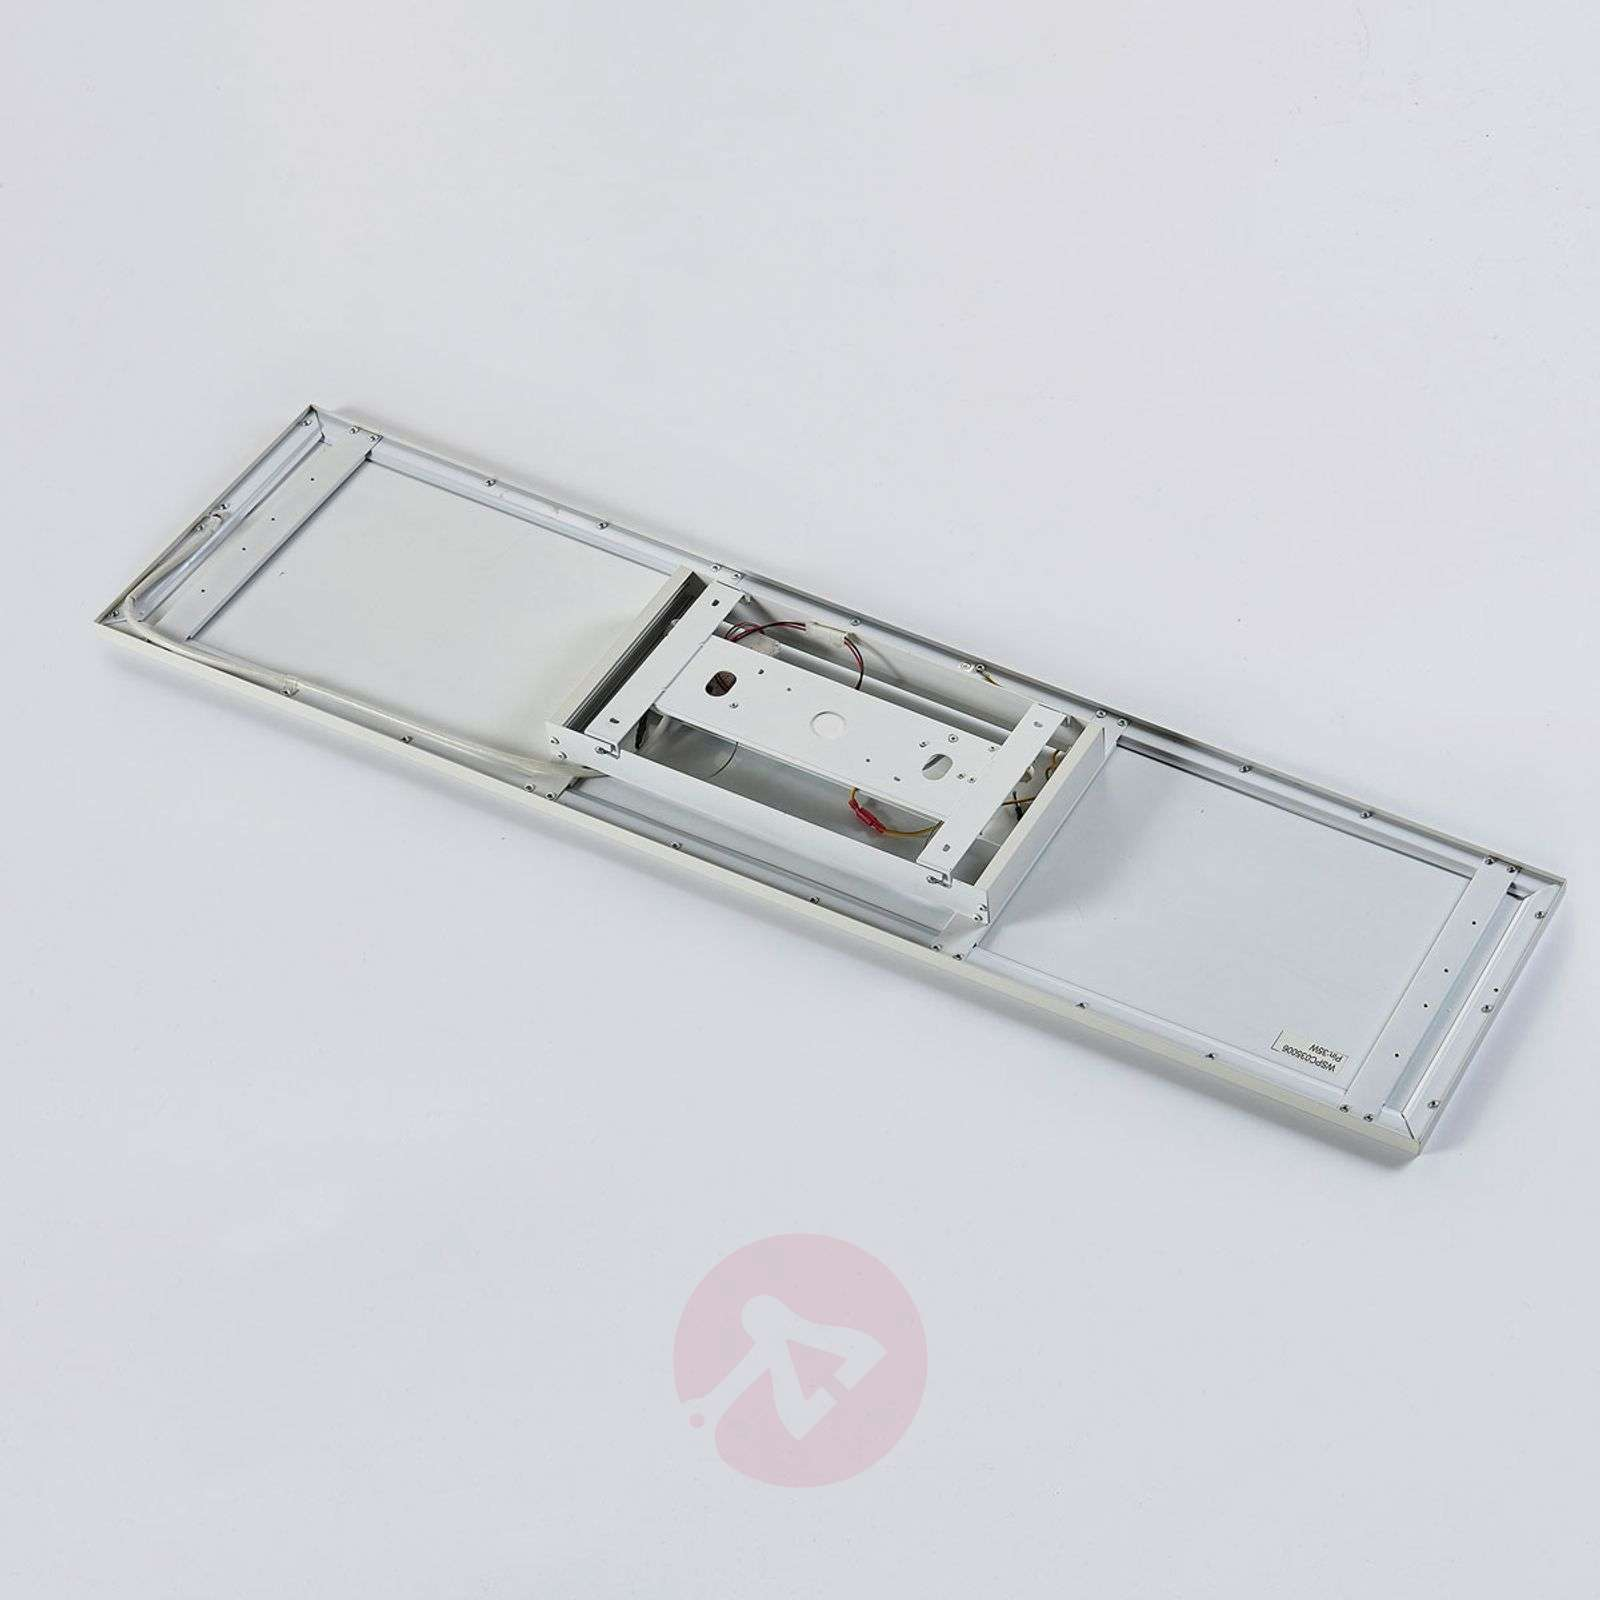 Panel LED Philia con intensa luz de color variable-9621216-02